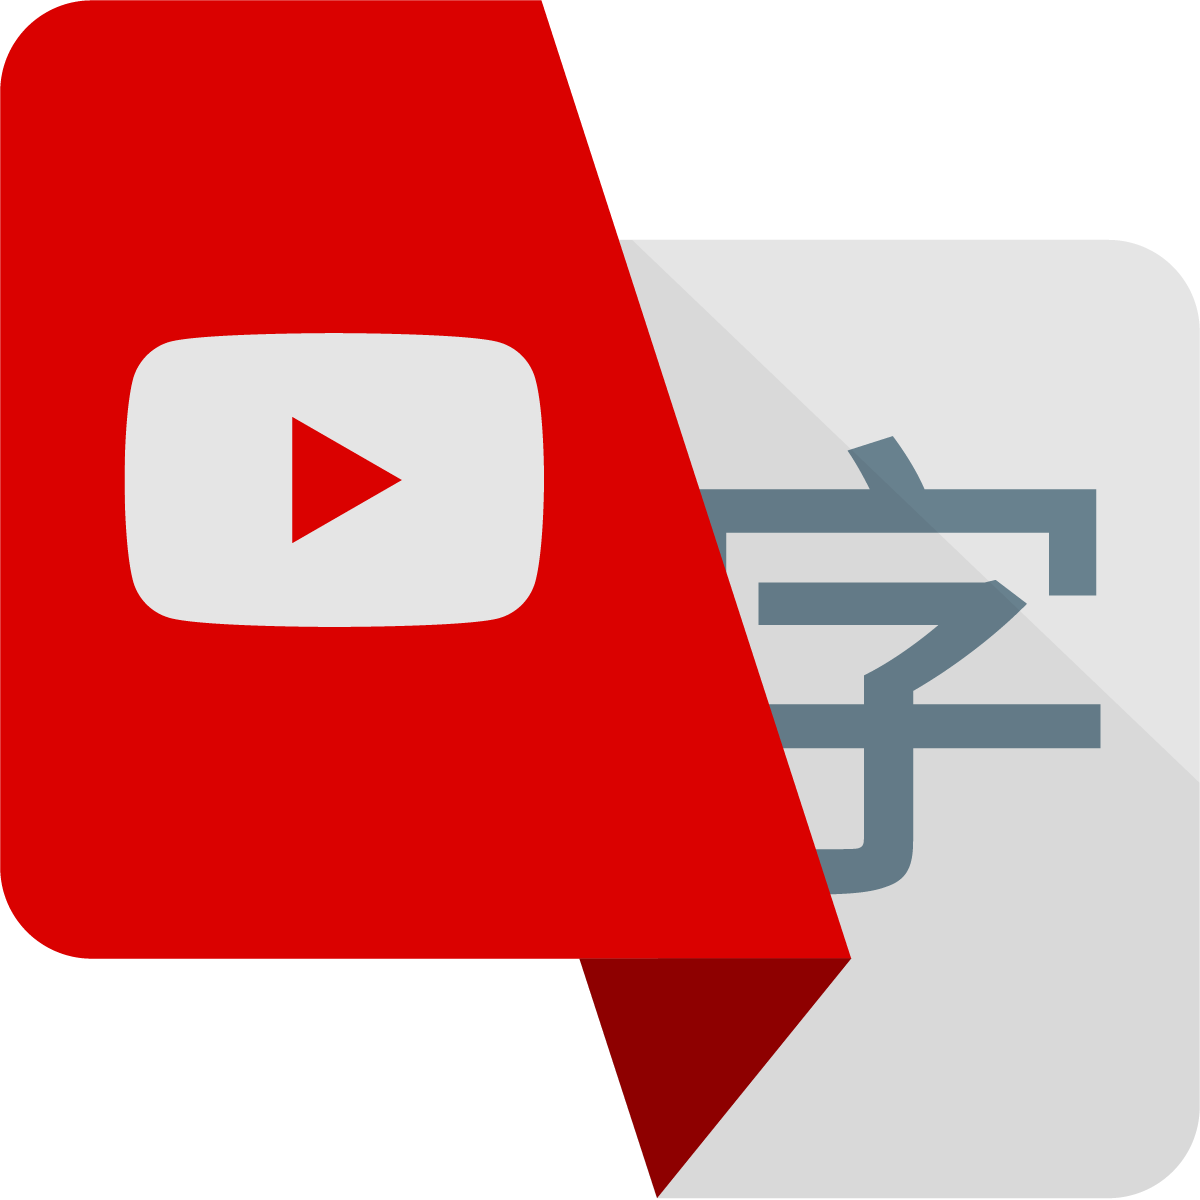 A URL of YouTube video